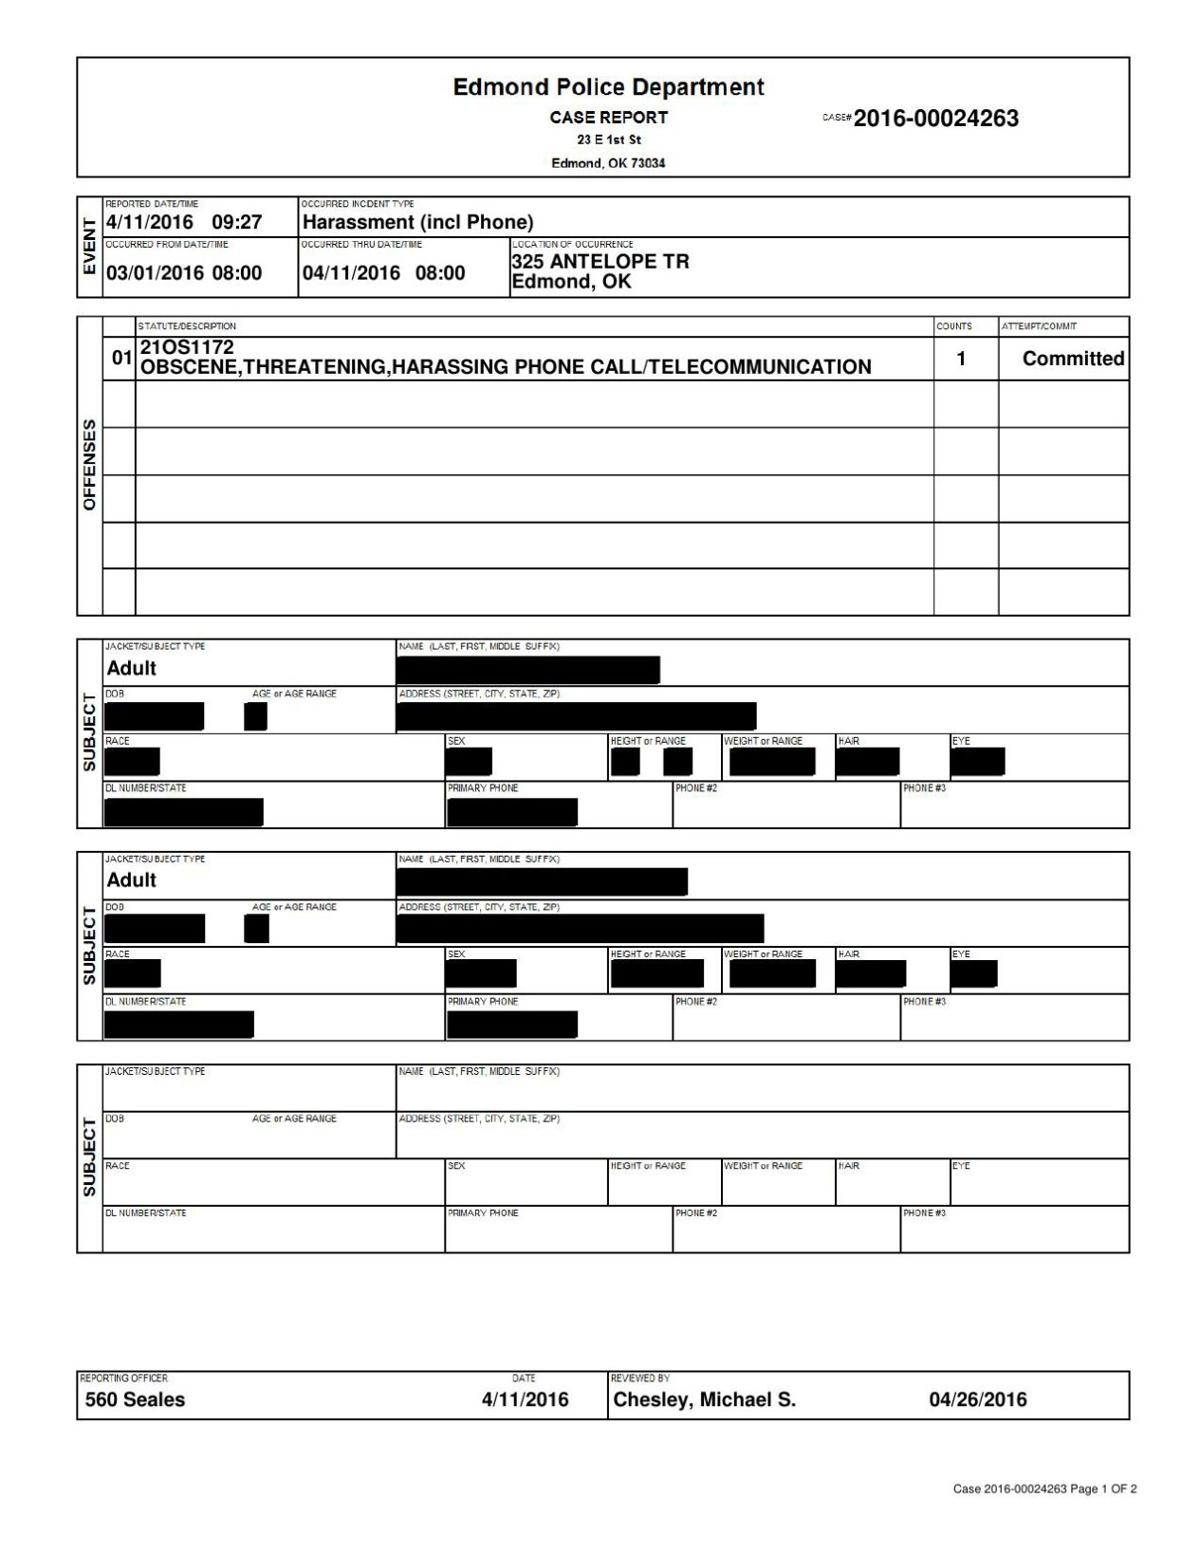 April 11, 2016 Oklahoma PD report on harassment claim